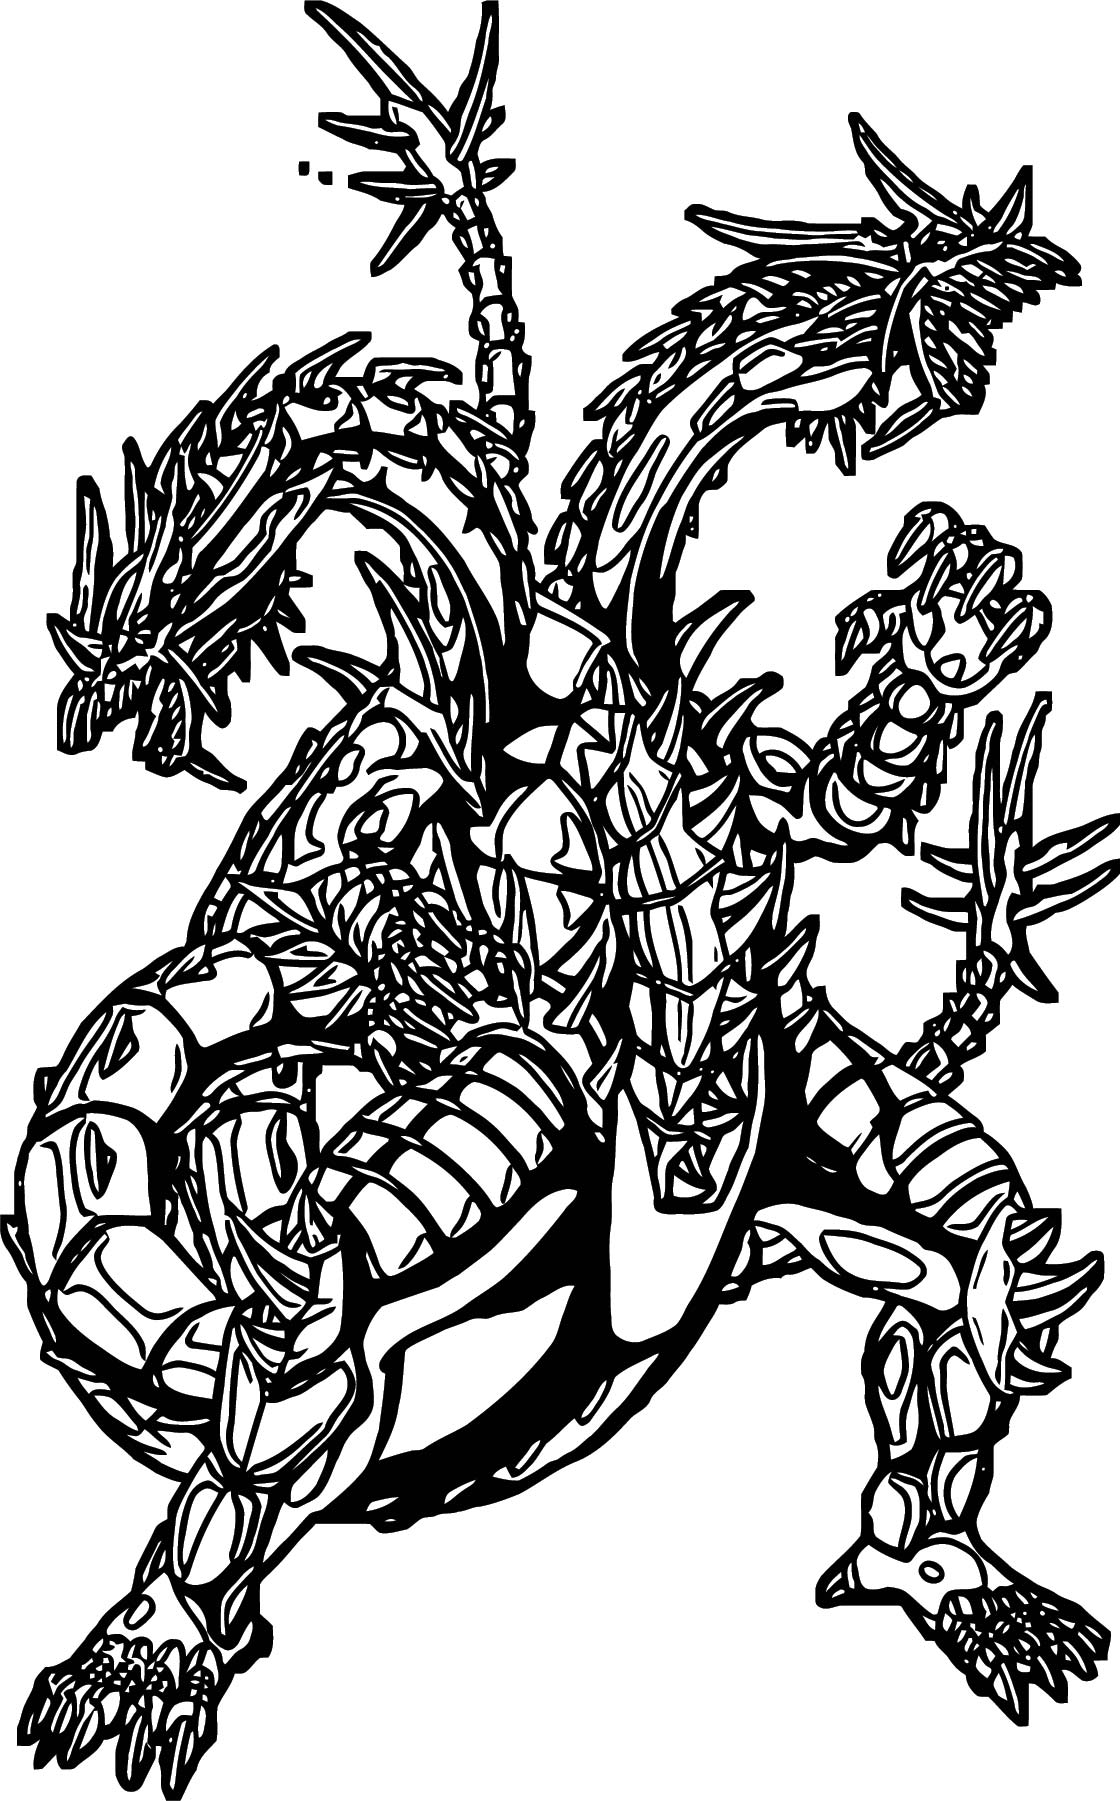 Hydranoid Double Coloring Page